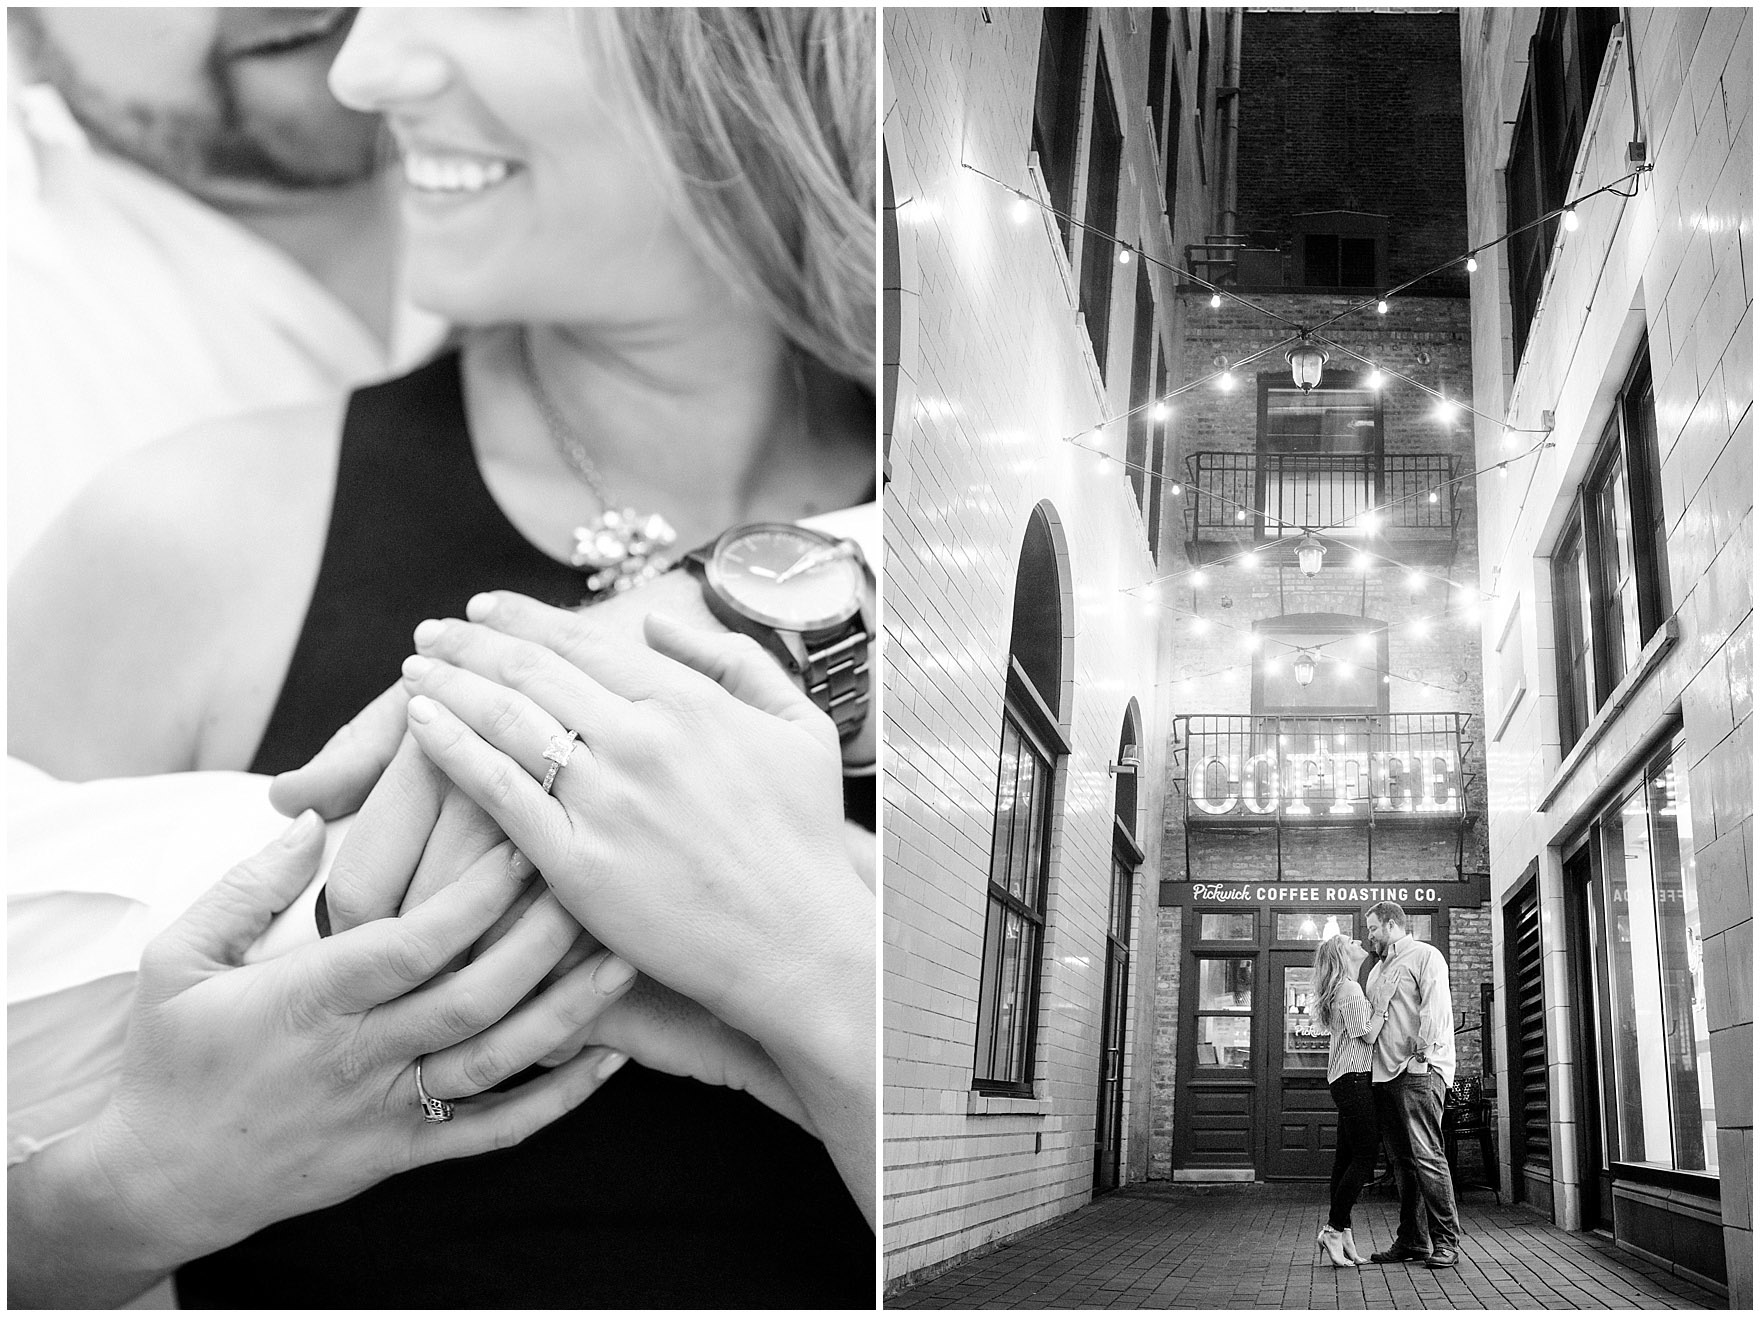 A couple embraces in front of the quaint Asado Pickwick coffeeshop during a downtown Chicago city engagement photography session.